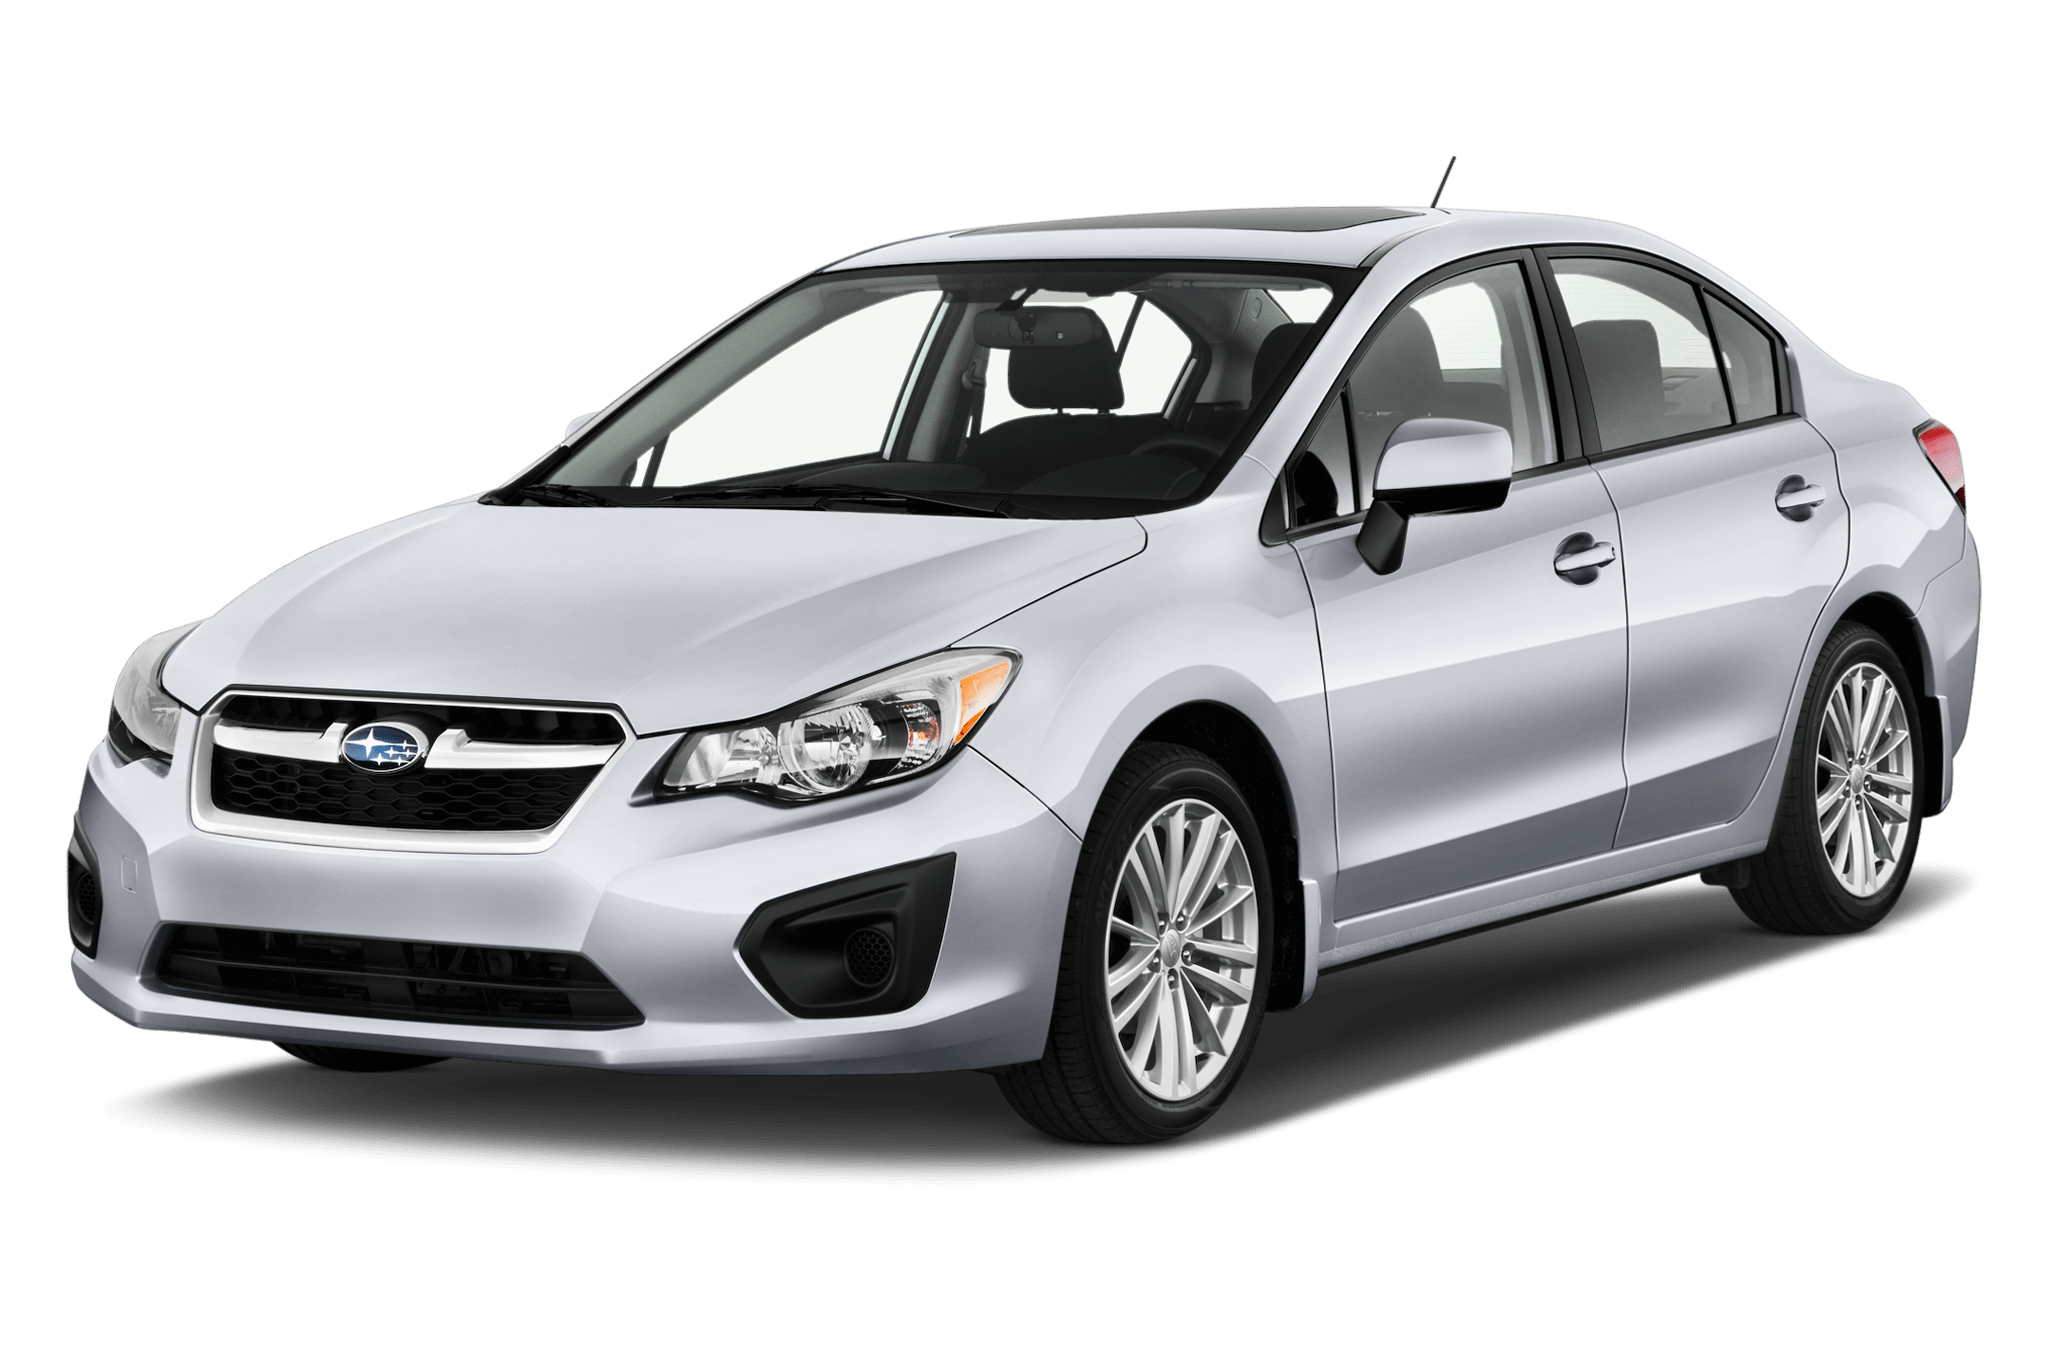 hight resolution of 2013 subaru impreza 2 0i pzev sedan interior features msn autos 2014 subaru impreza hatchback sport subaru impreza 2 0i engine diagrams